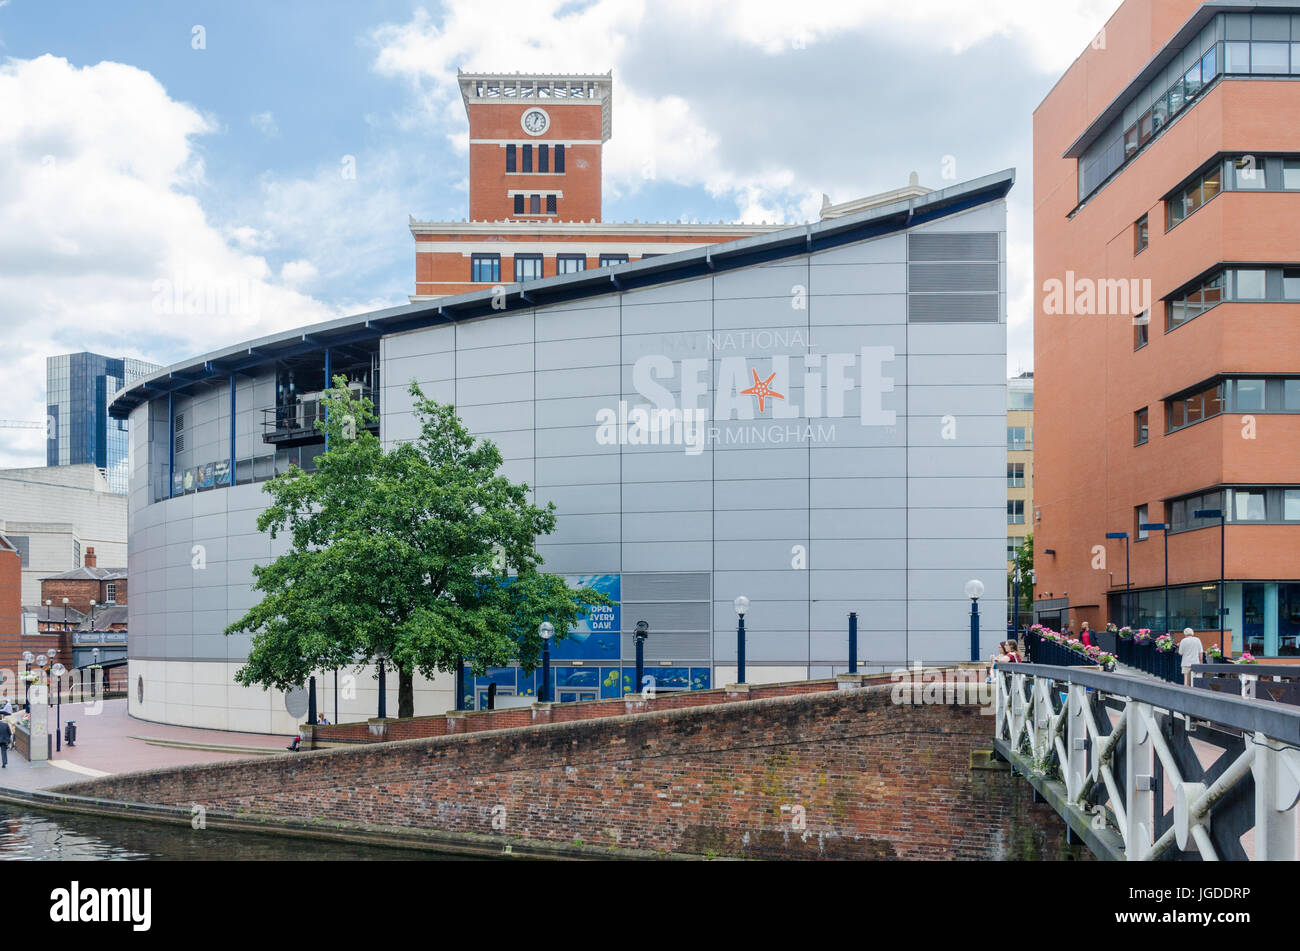 The Sea Life Centre by the canal running through Birmingham at Brindley Place - Stock Image